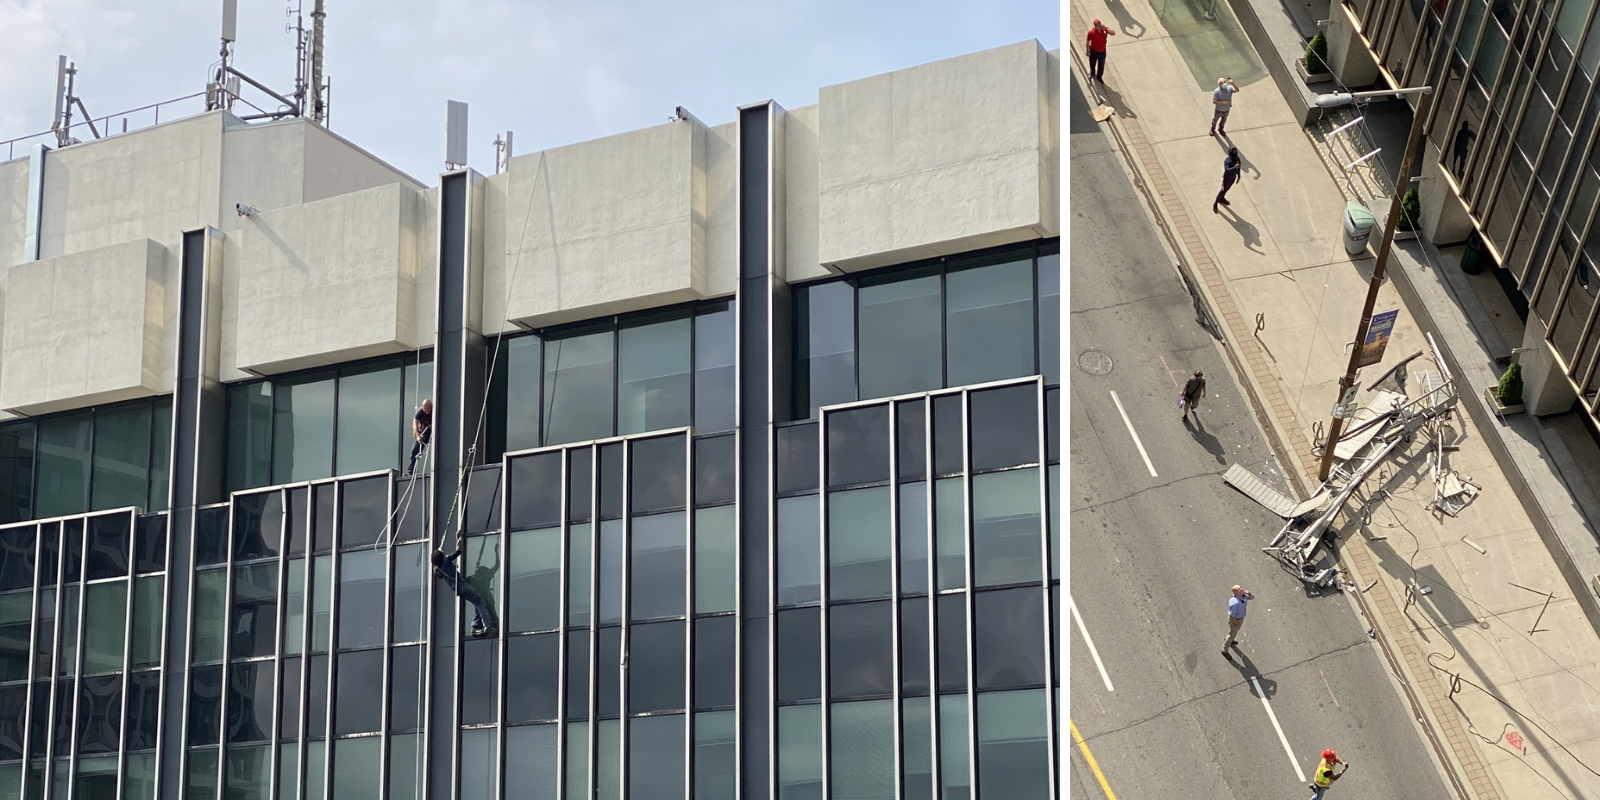 Window cleaners rescued from top floor of Toronto tower after platform collapses 25 stories